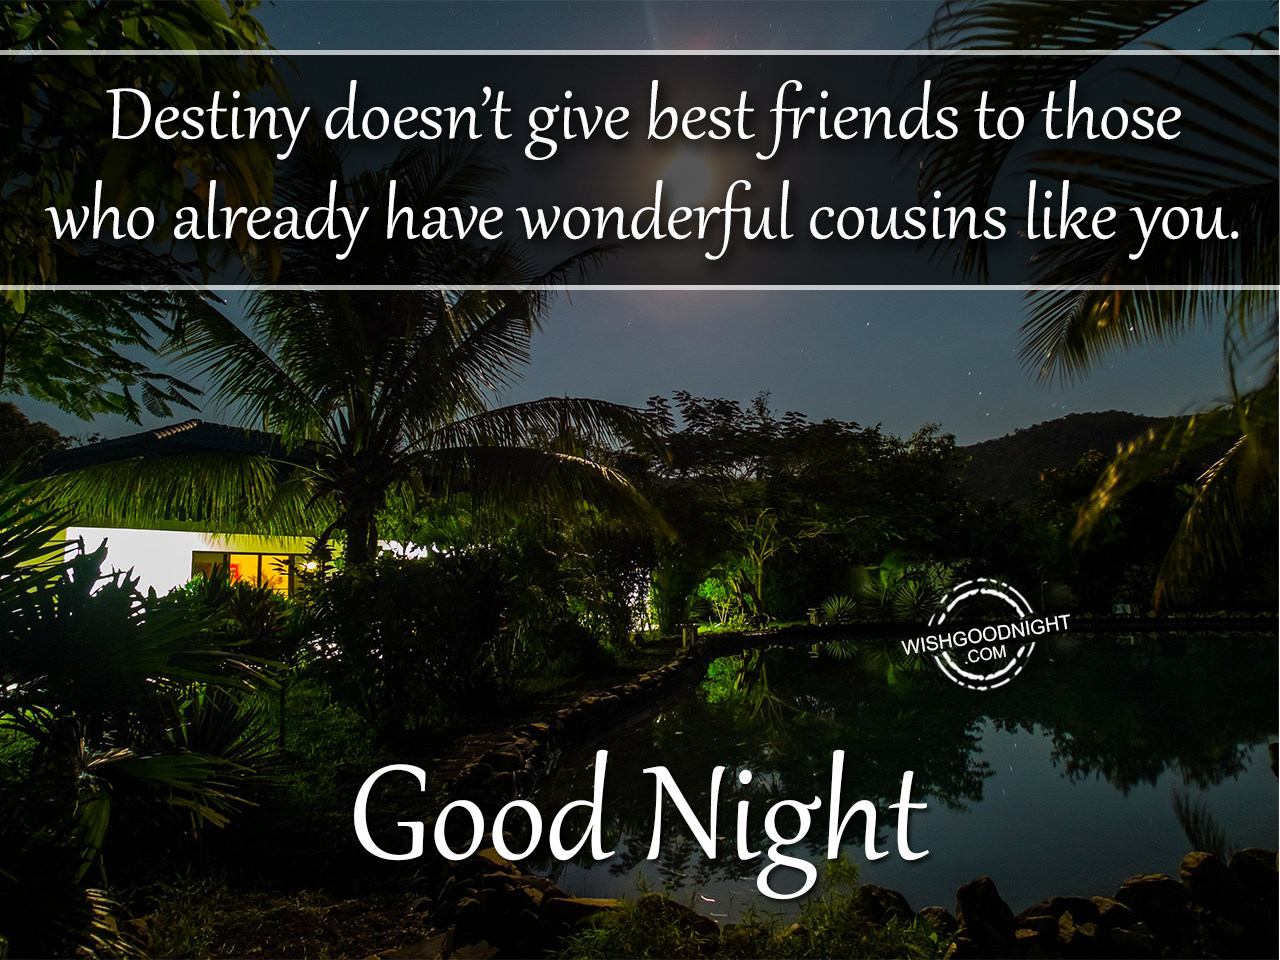 Good Night Wishes For Cousin Good Night Pictures Wishgoodnight